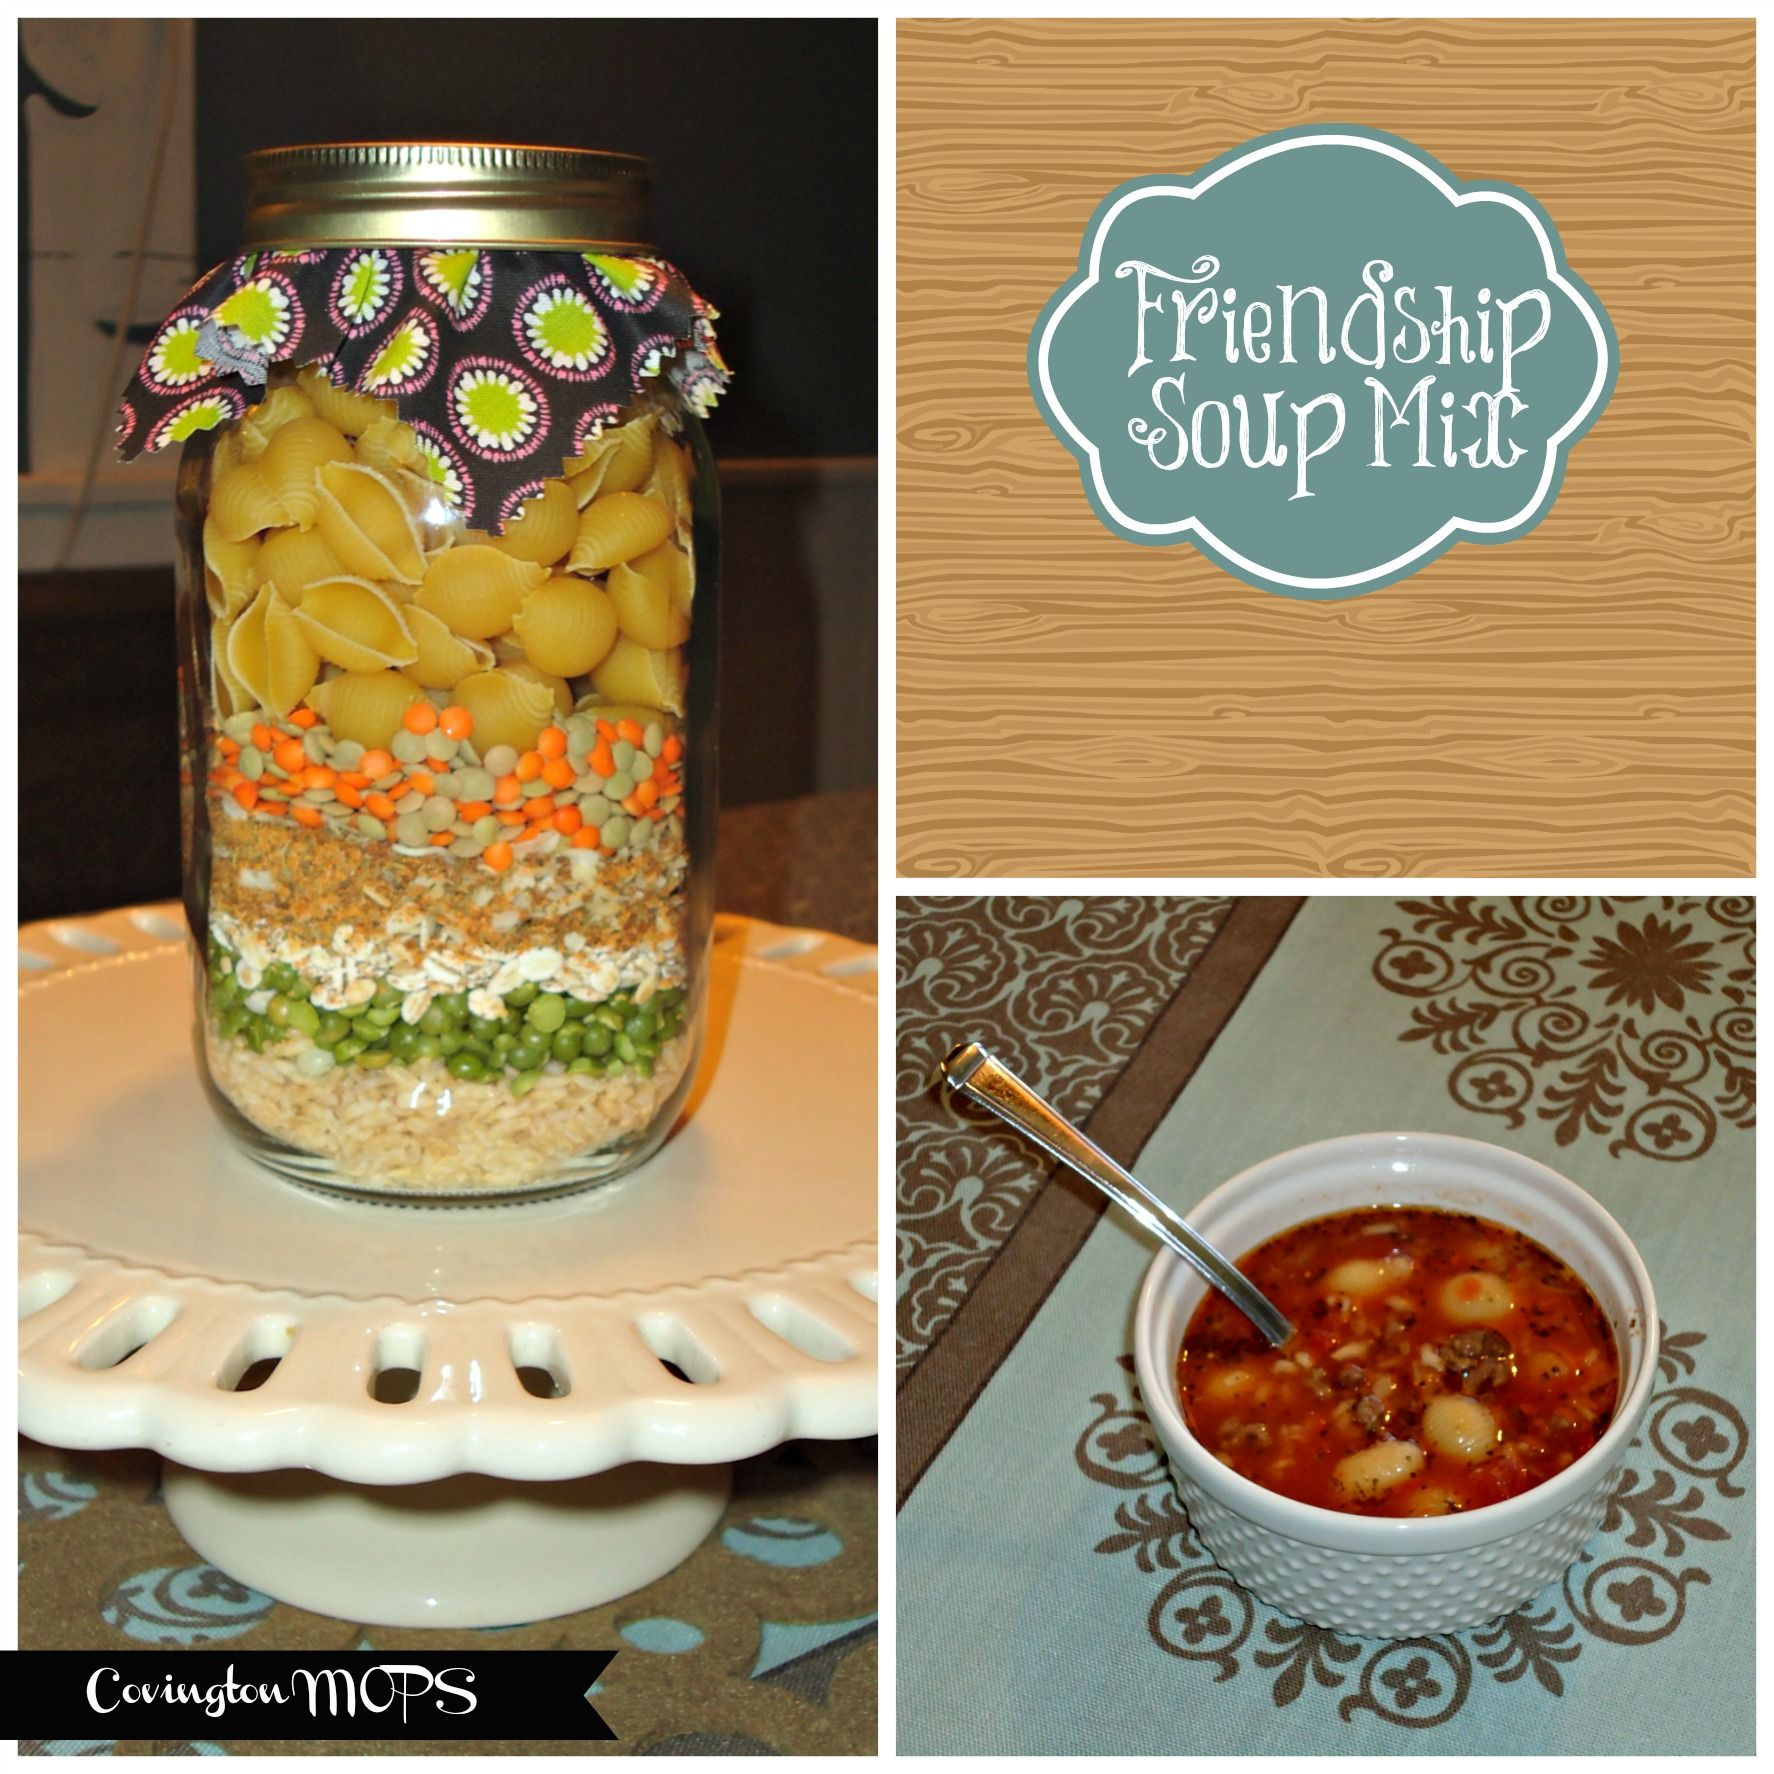 Pin by emily juarez on xmas gifts pinterest crafts soup and jar